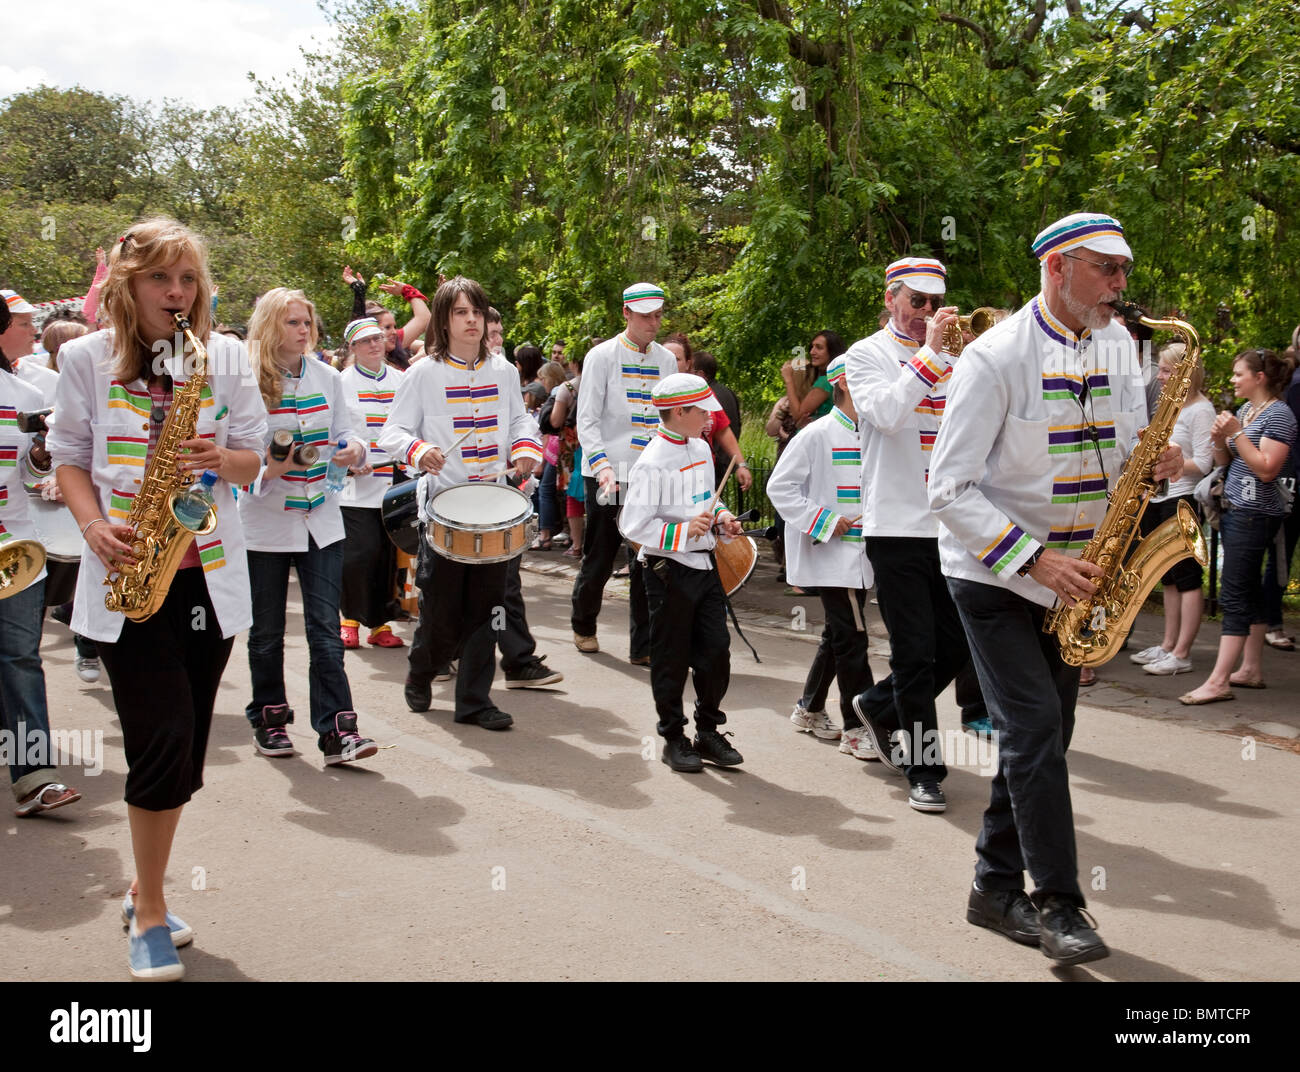 More Music band in the parade at Glasgow's West End Festival Sunday 2010 in Kelvingrove Park. - Stock Image